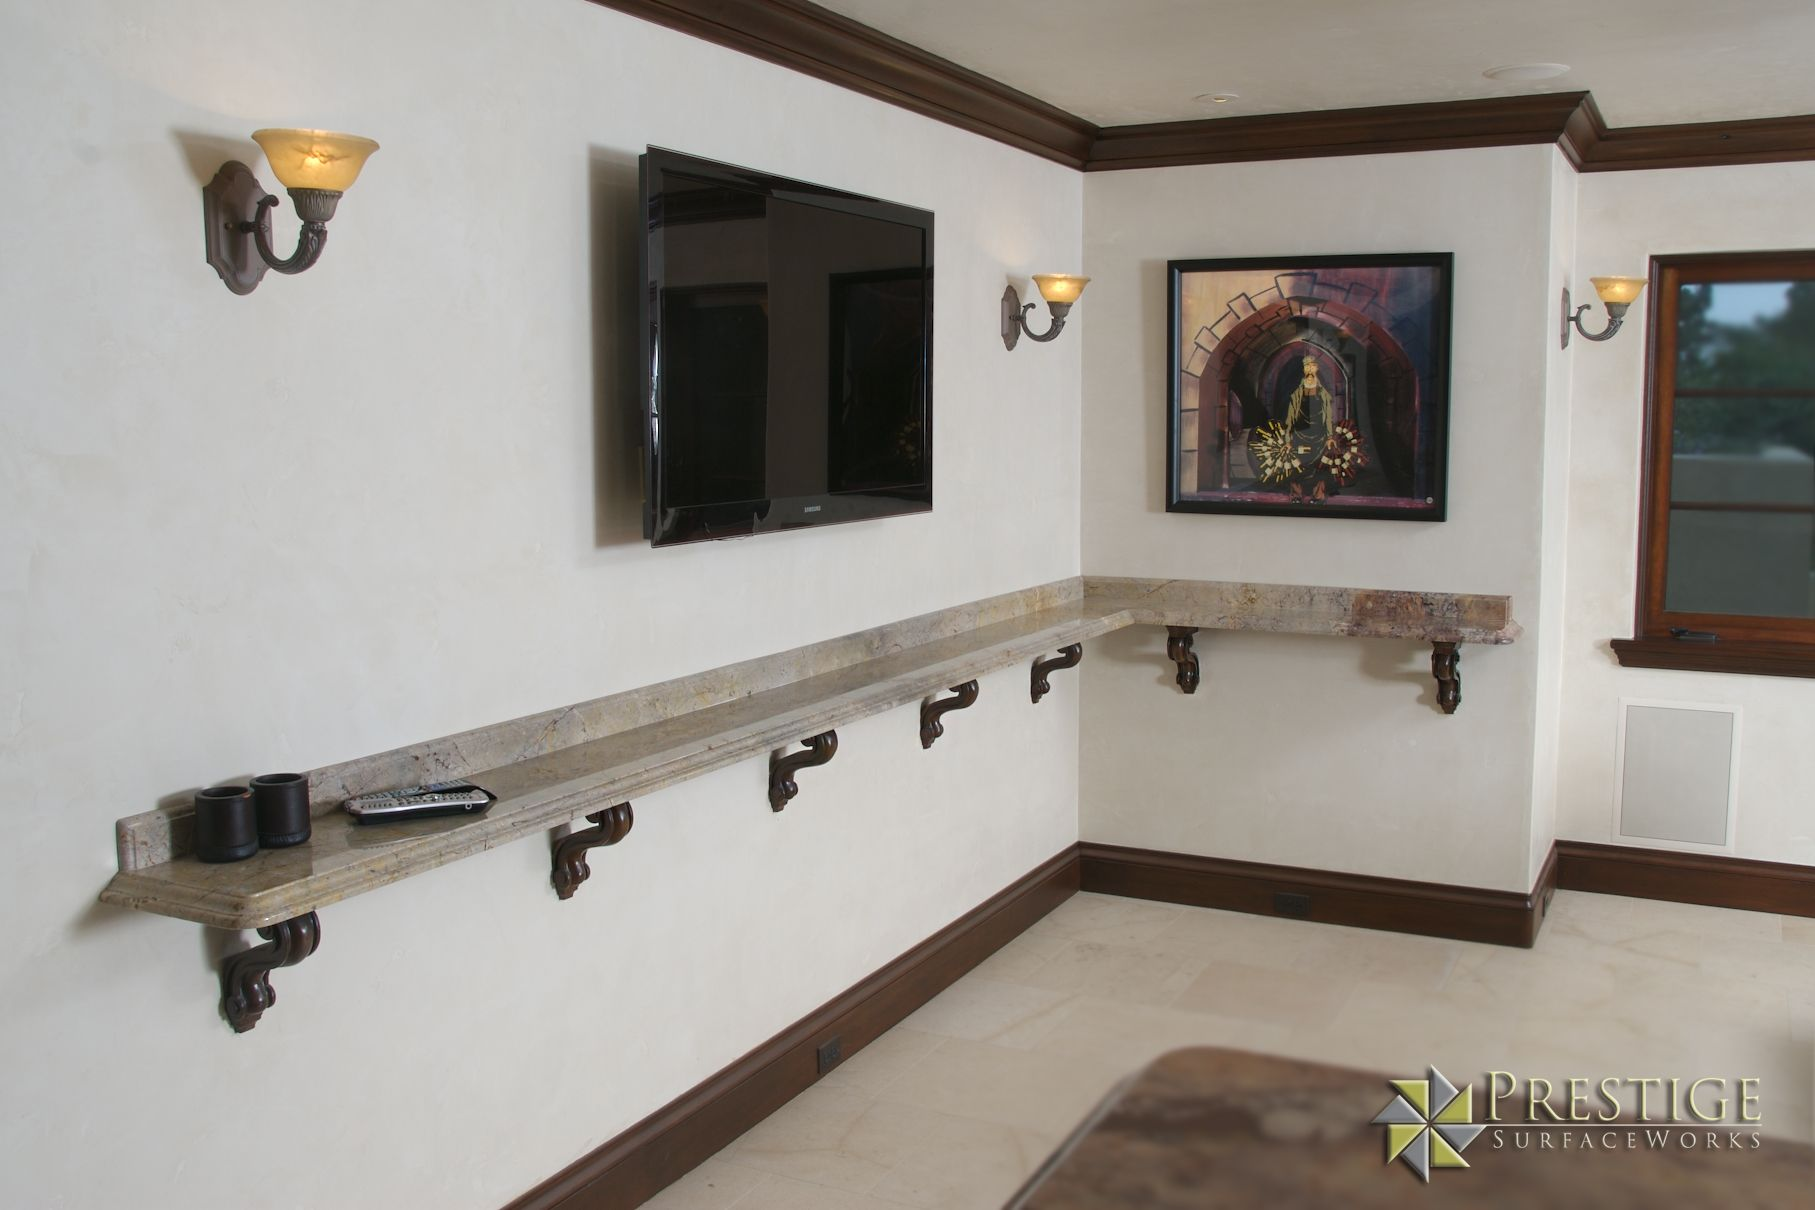 The Best Classy Recreation Room Ideas For A StressReliefTime At - Pool table movers milwaukee wi